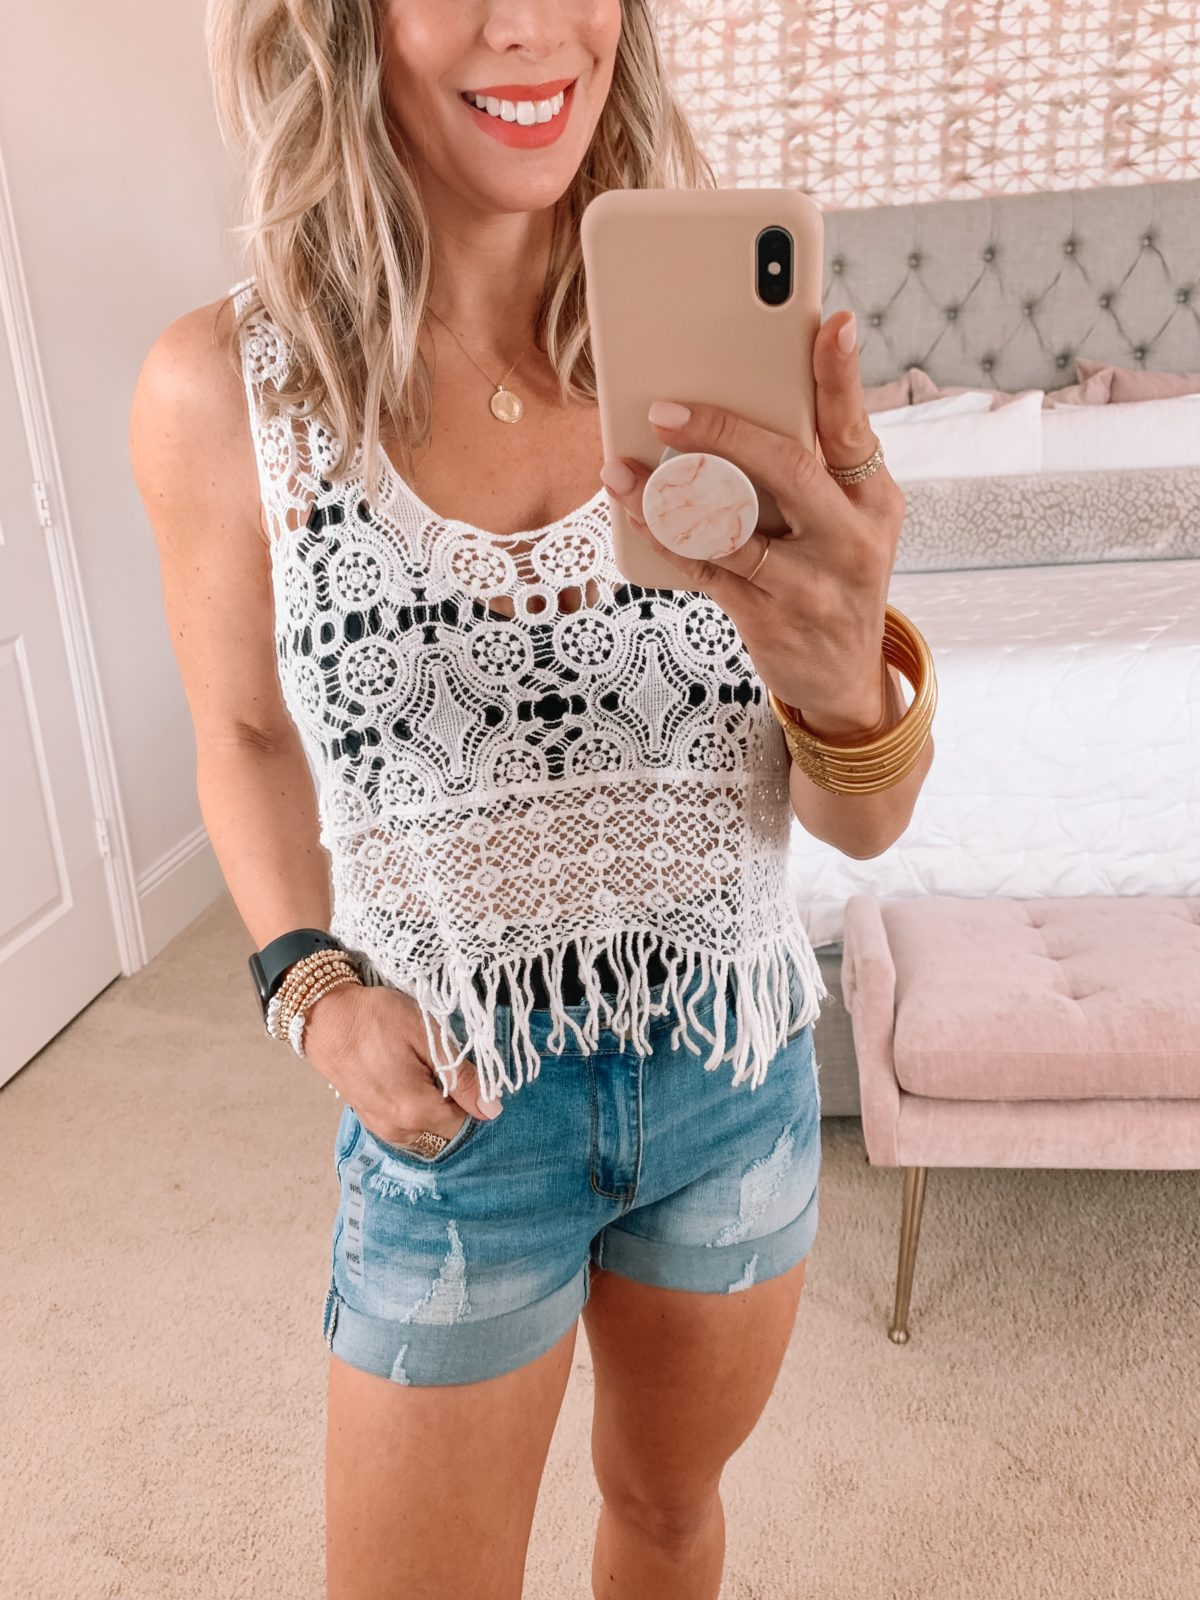 Amazon Fashion Faves, Cover up Crop Top, Jean Shorts, Sandals